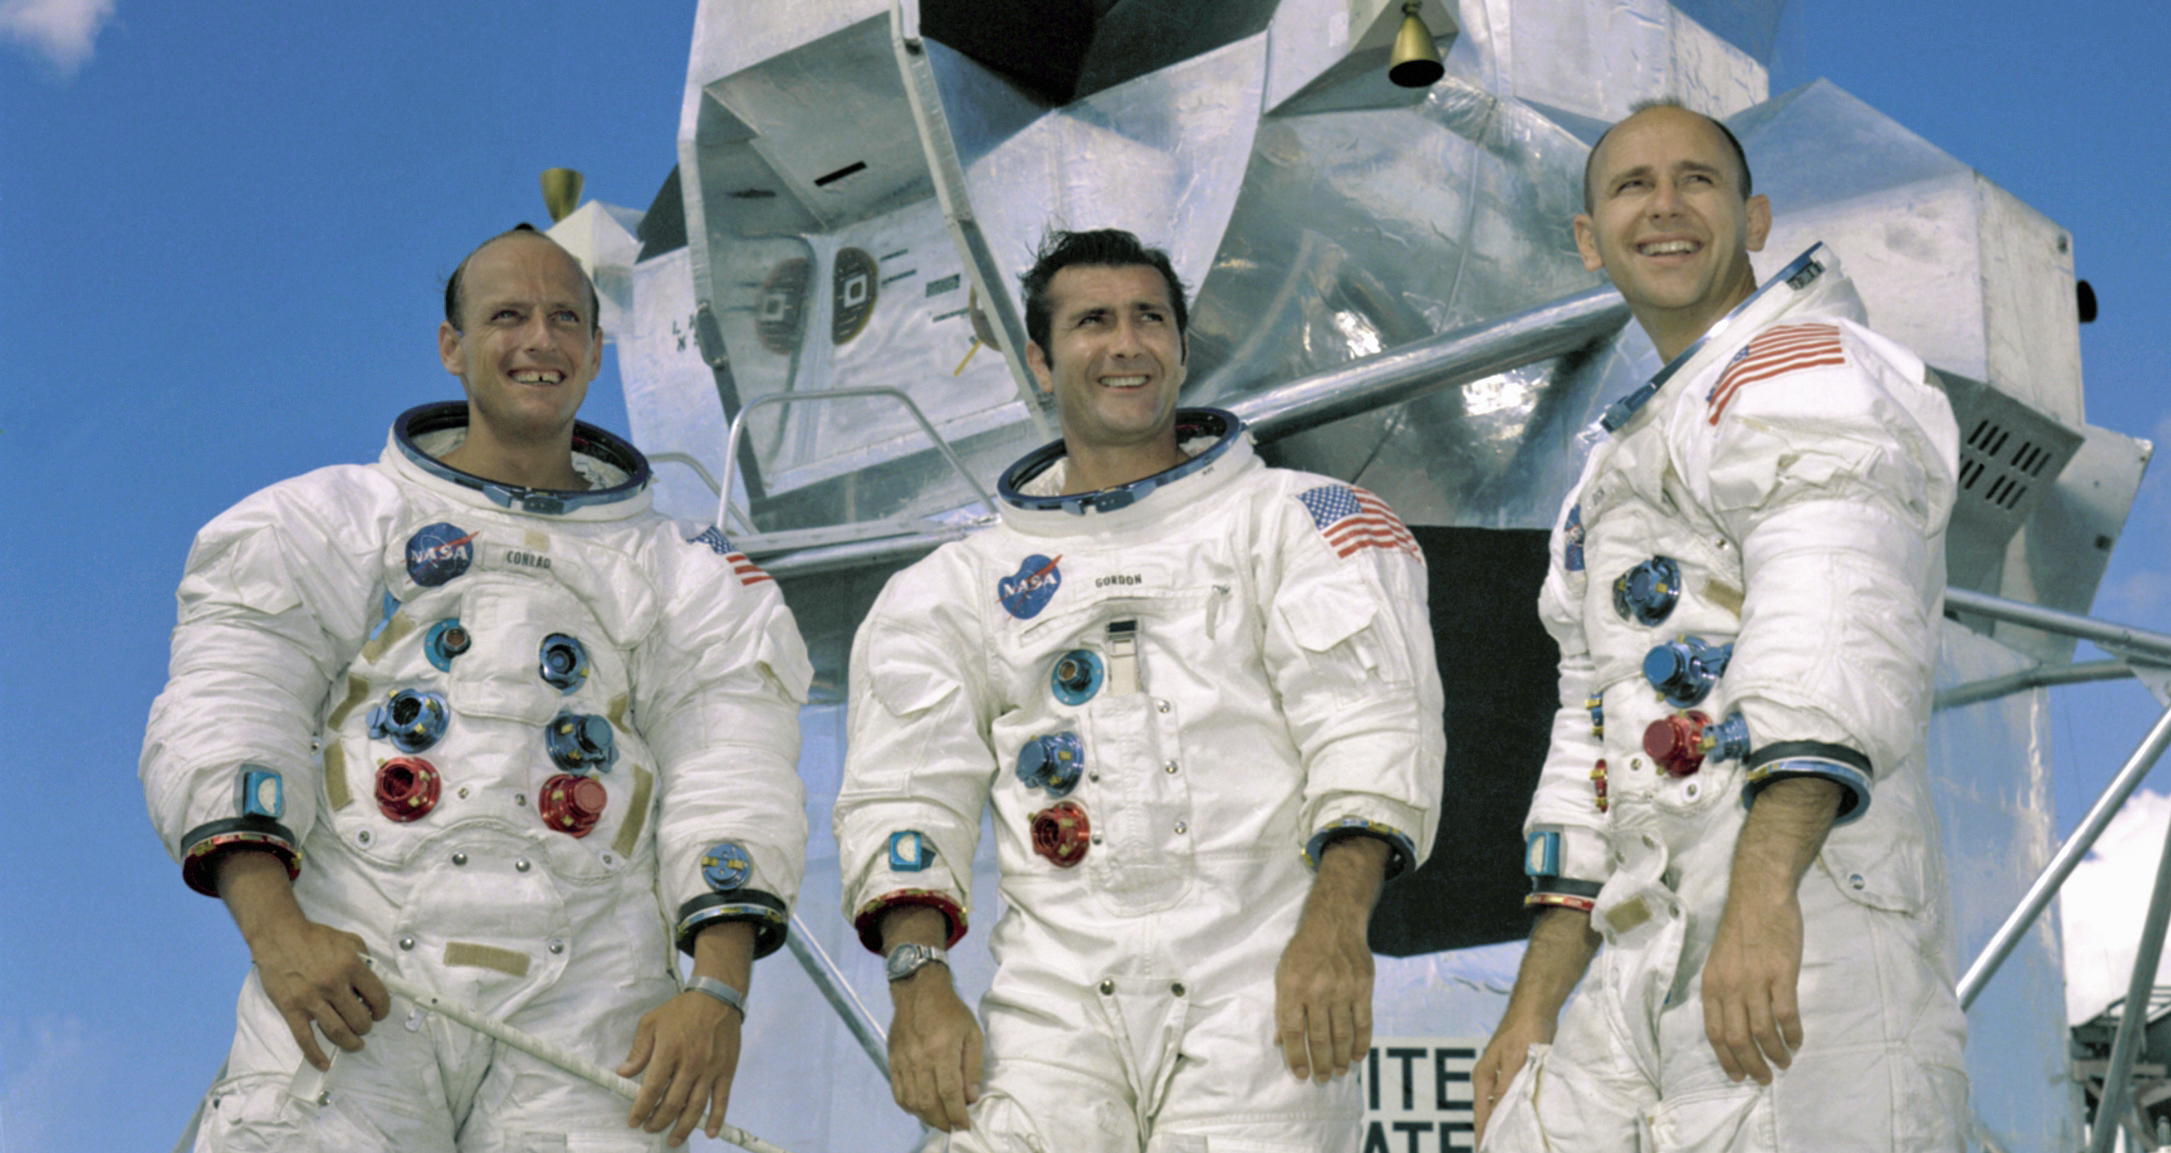 Apollo 12 crew: Pete Conrad, Richard Gordon & Alan Bean (courtesy of NASA)